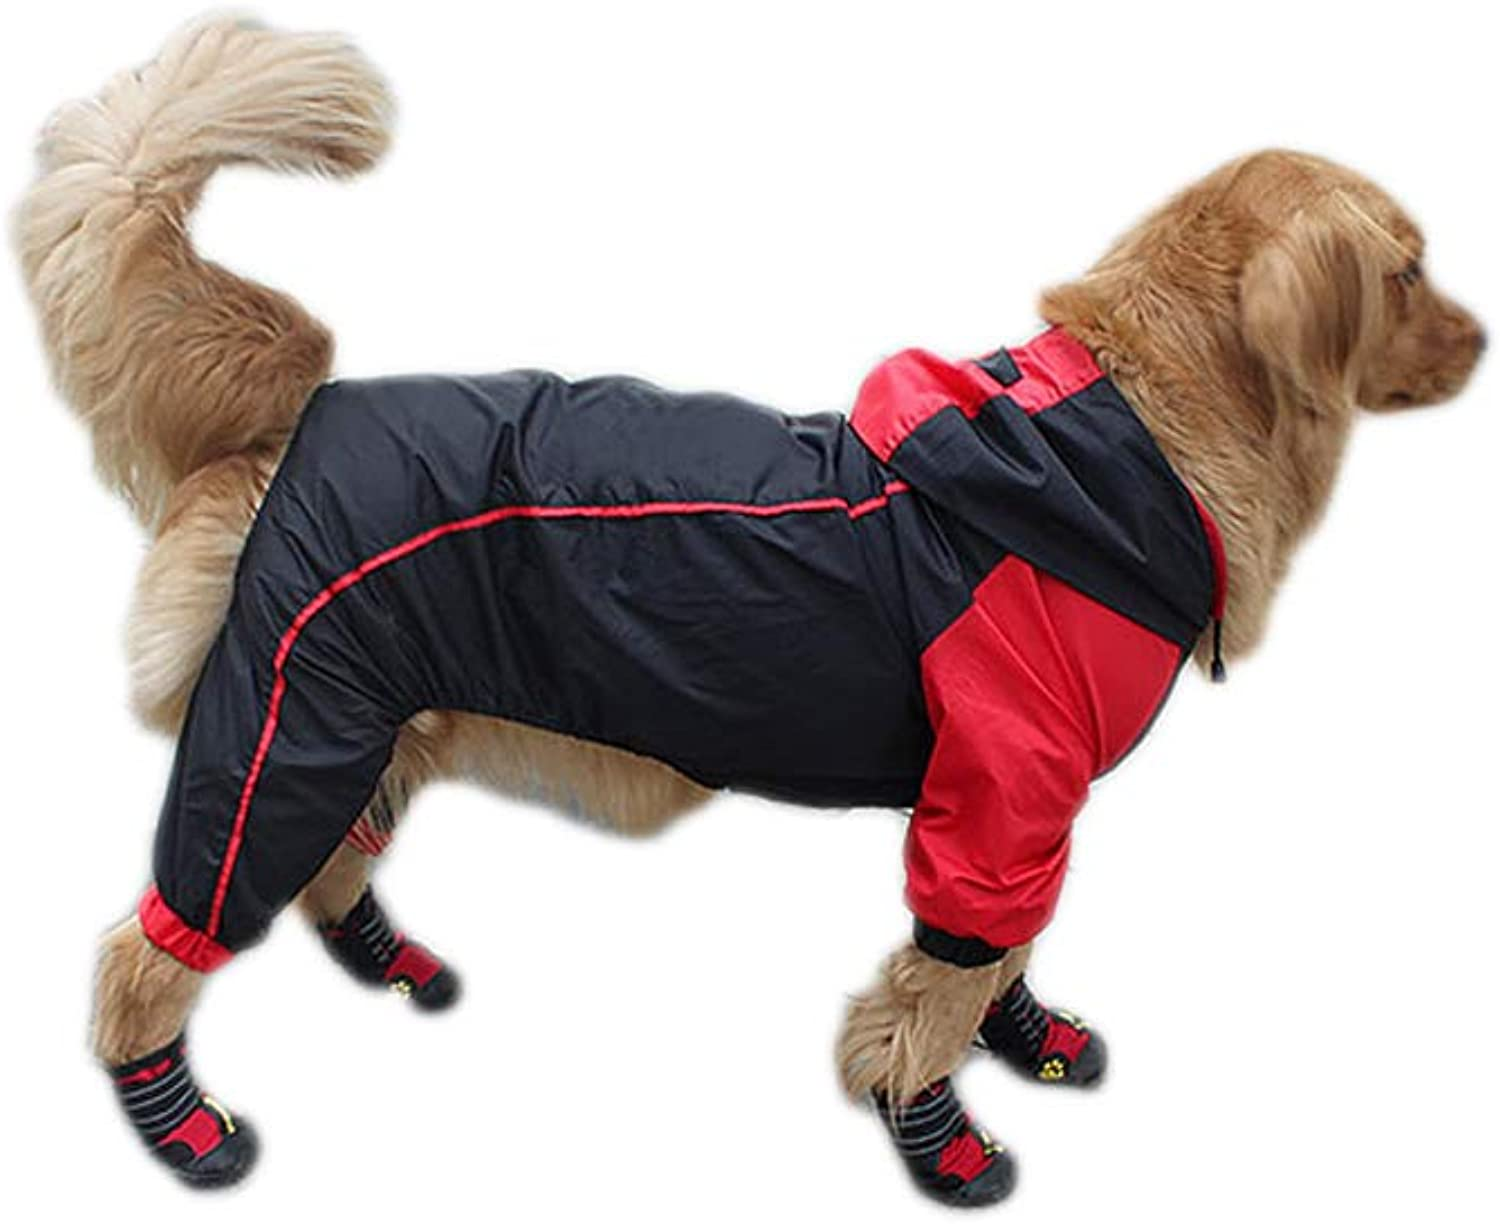 golden Raincoat FourLegged Waterproof Large Dog Hooded AllInclusive Summer Thin Section,maledogblackwithred,XXXL